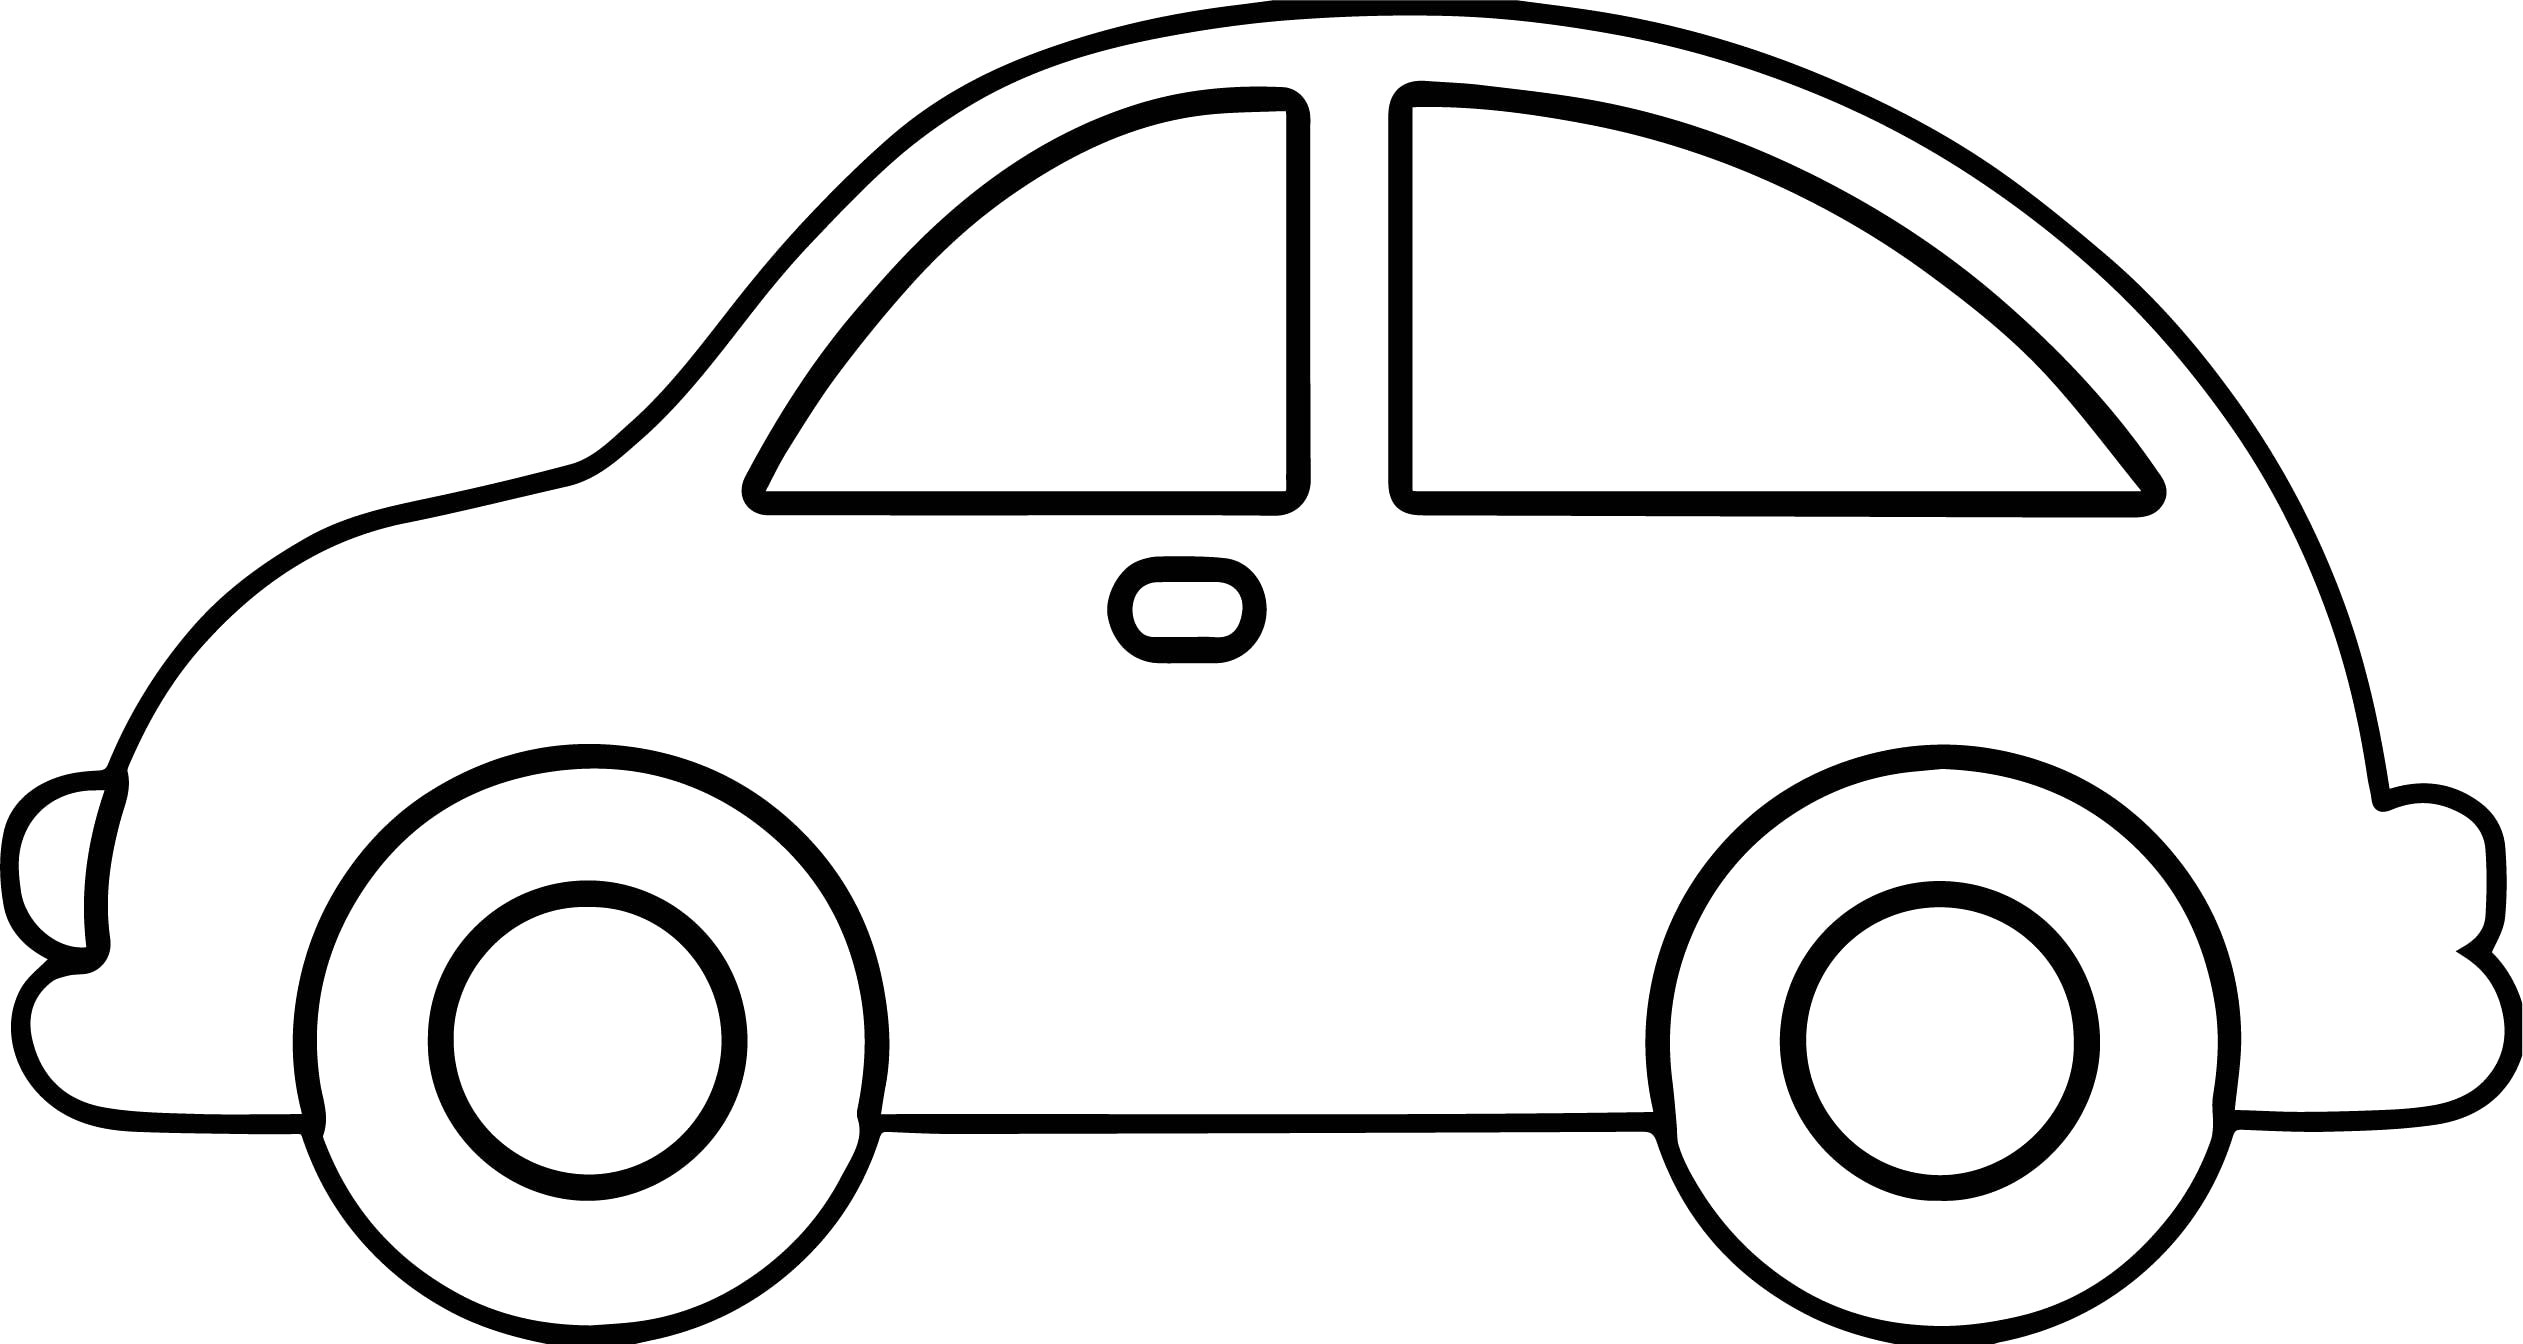 Car Outline Clipart 3 Clipart Station